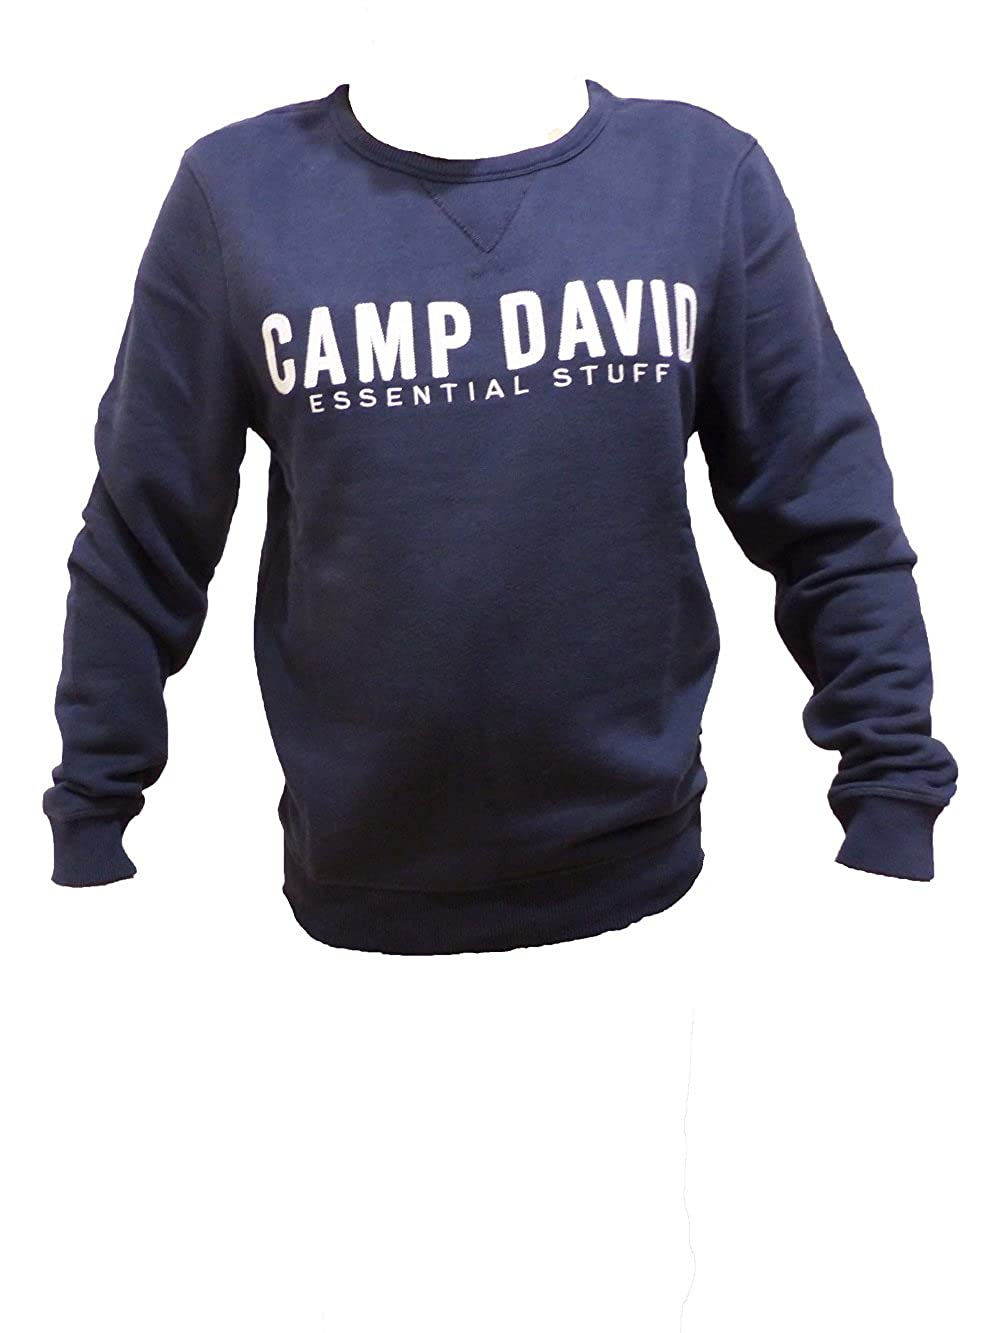 good out x newest where can i buy Camp David Sweatshirt Essential Stuff 2018 Blue Navy CCB ...